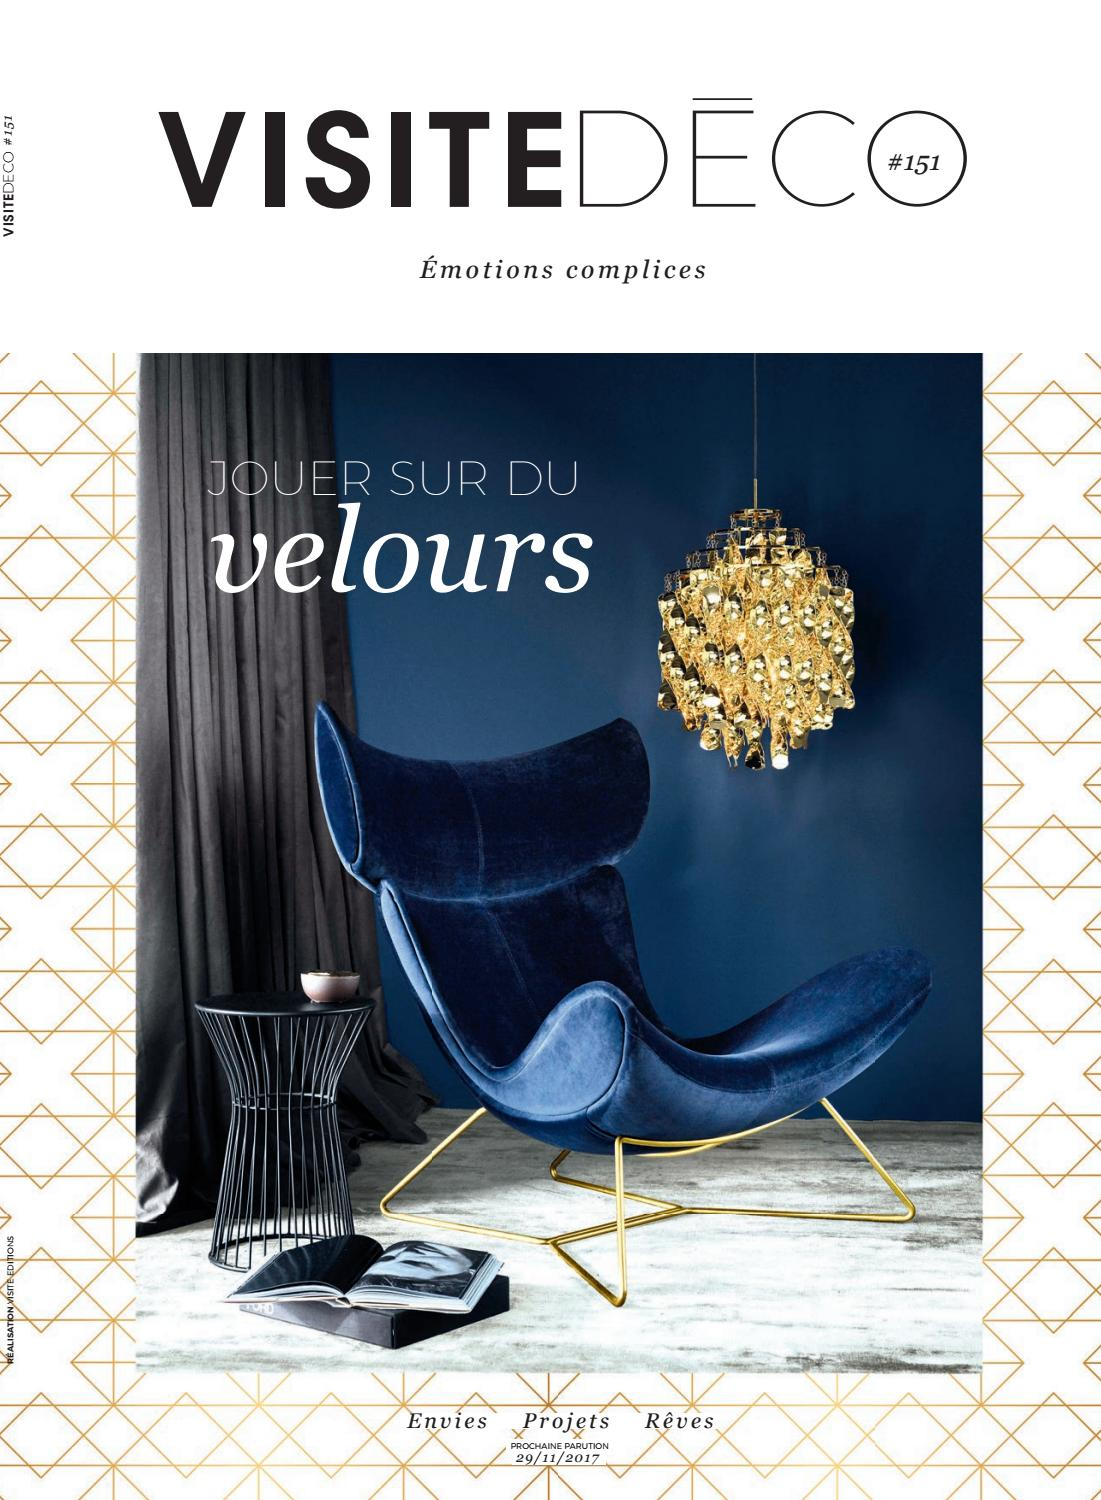 Magasin Meubles Wervicq Belgique Visite Deco 151 By Visite Editions Issuu